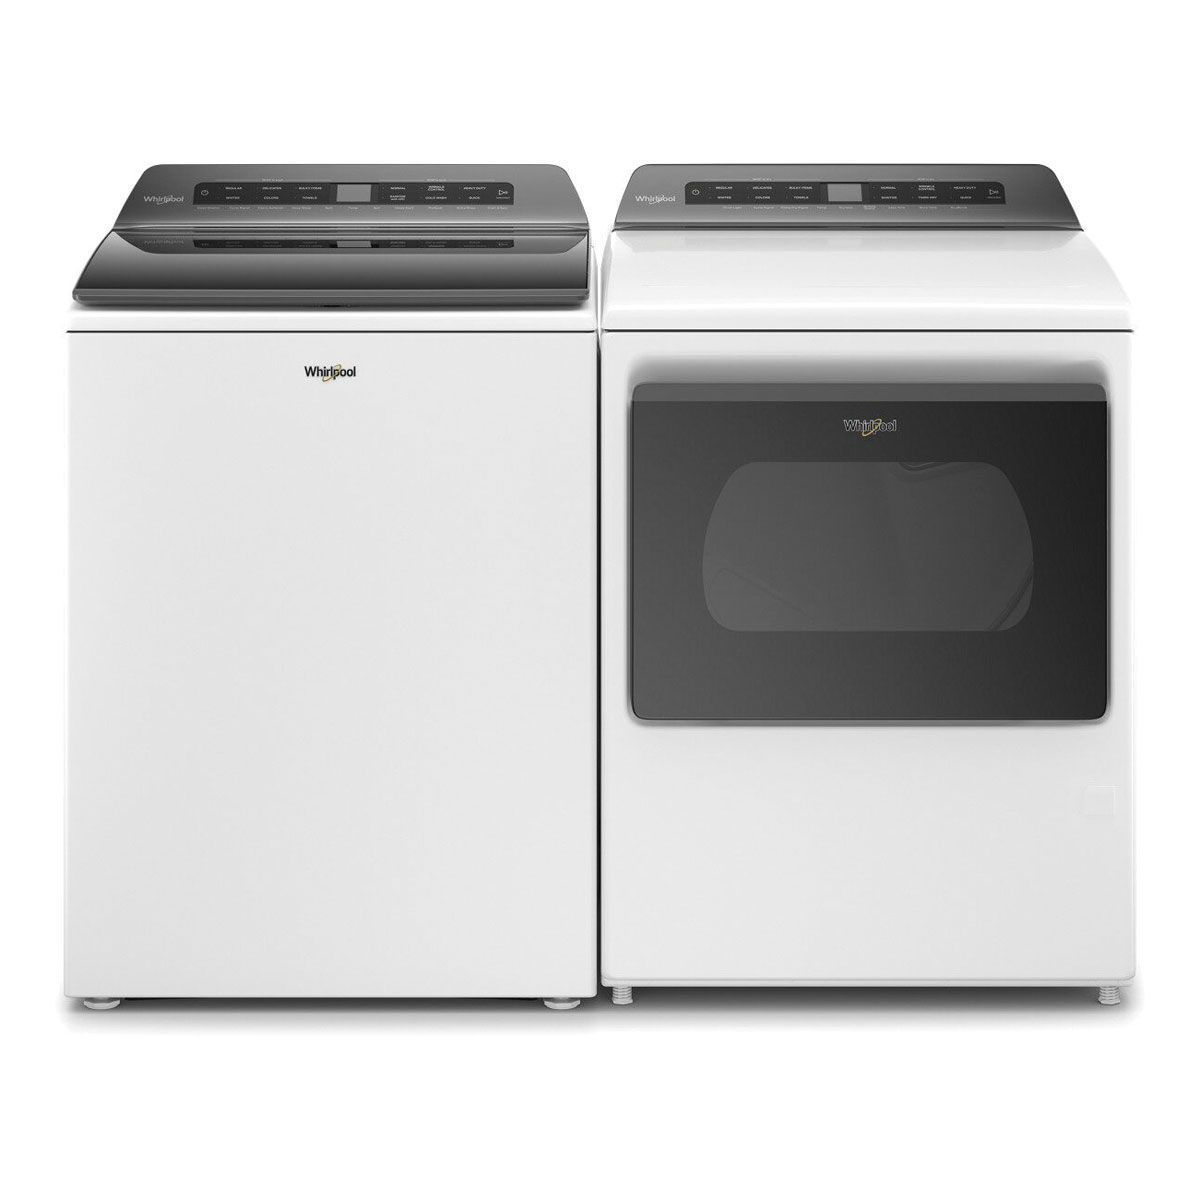 Picture of Whirlpool Top Load Washer & Dryer Pair